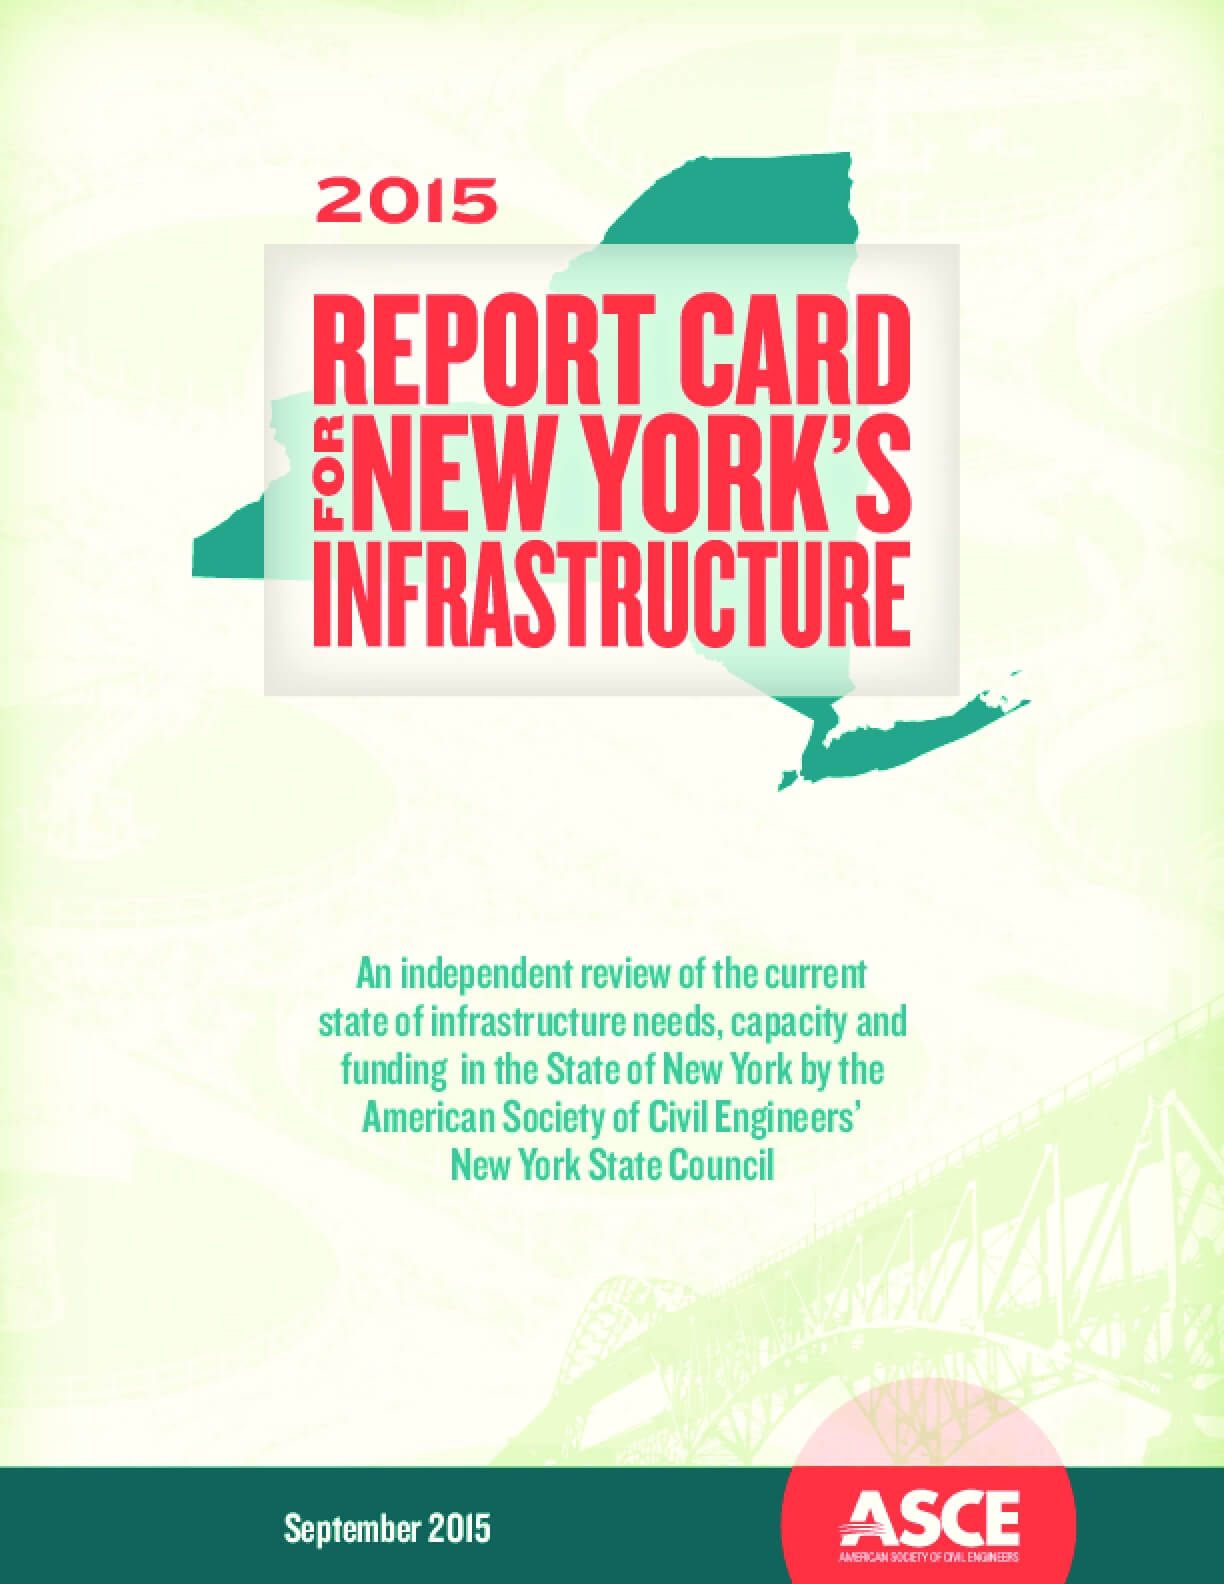 Report Card for New York's Infrastructure 2015